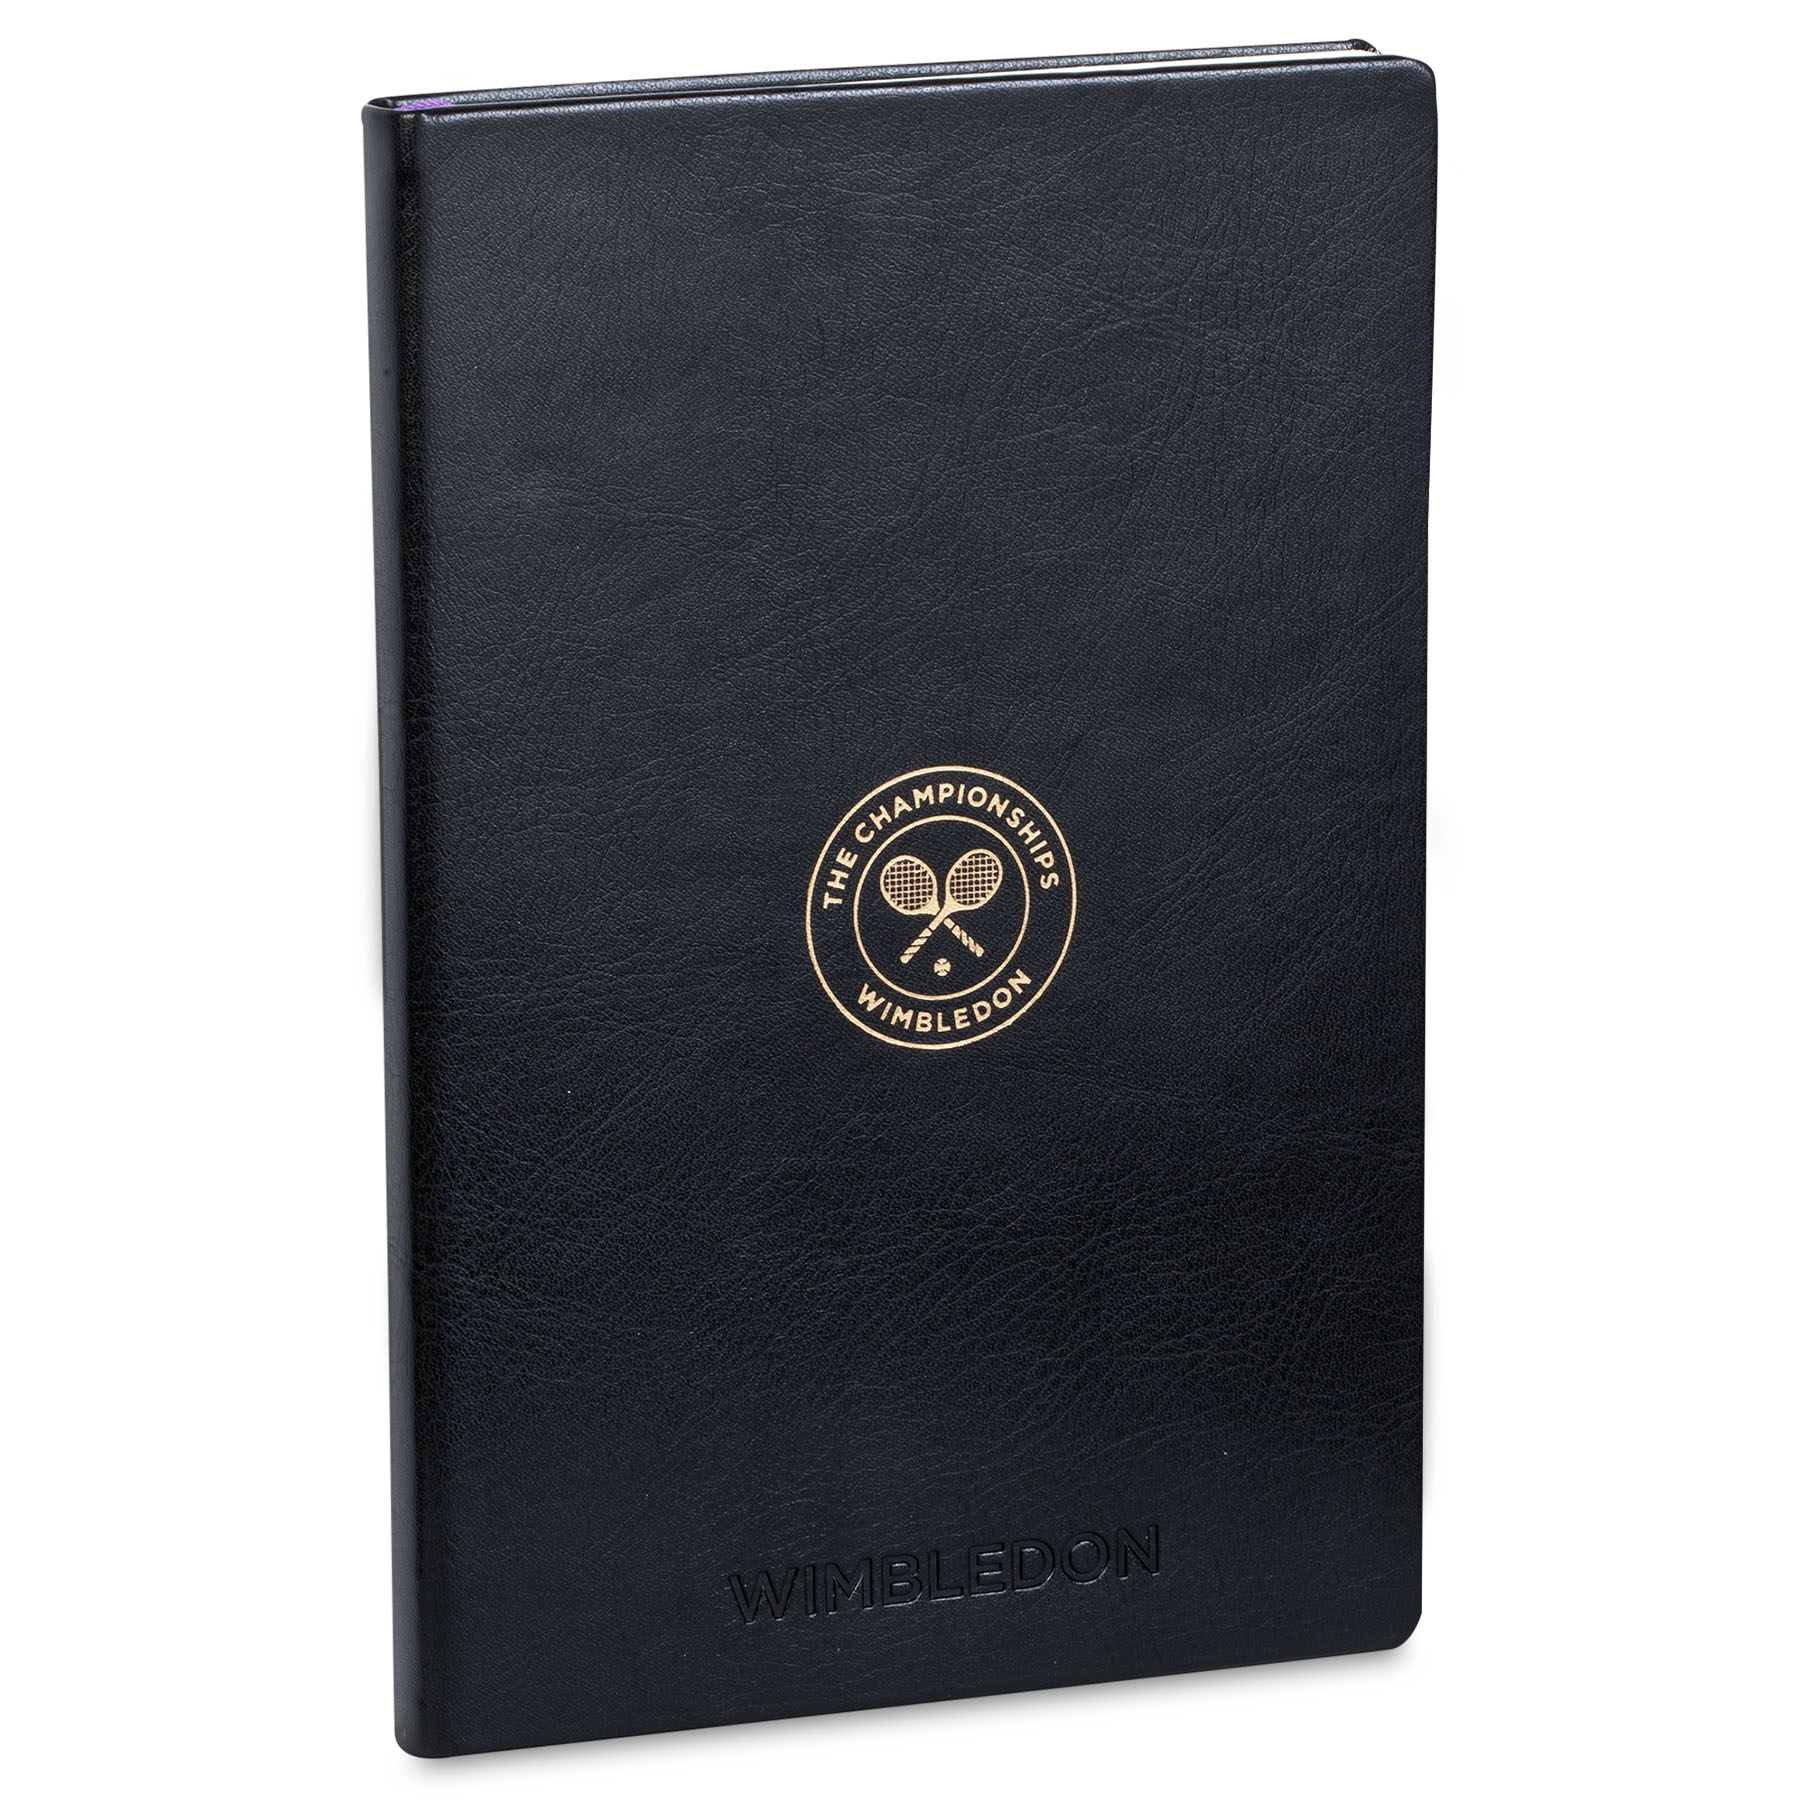 Wimbledon A5 Notepad - Black